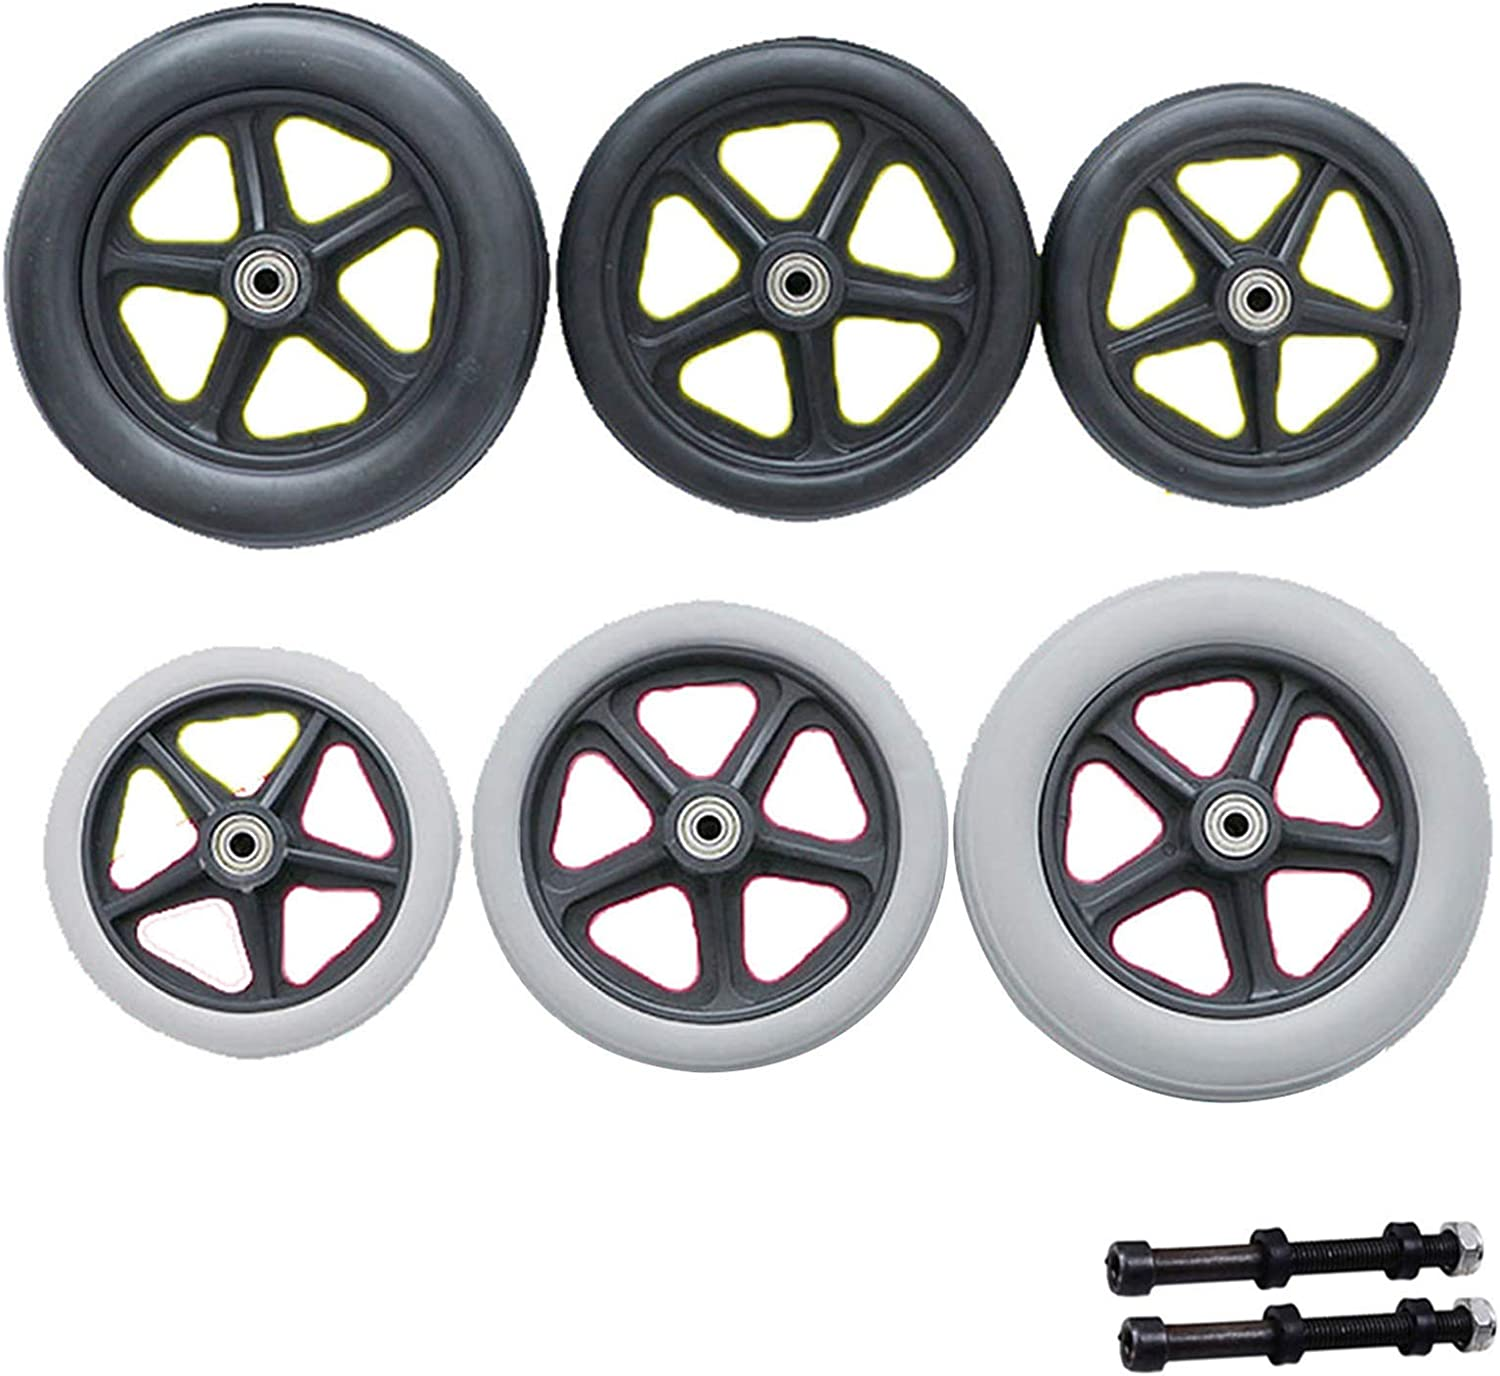 Gnova Replacement Award Wheelchair Casters Solid PVC Tire Spokes Rim 2021 5